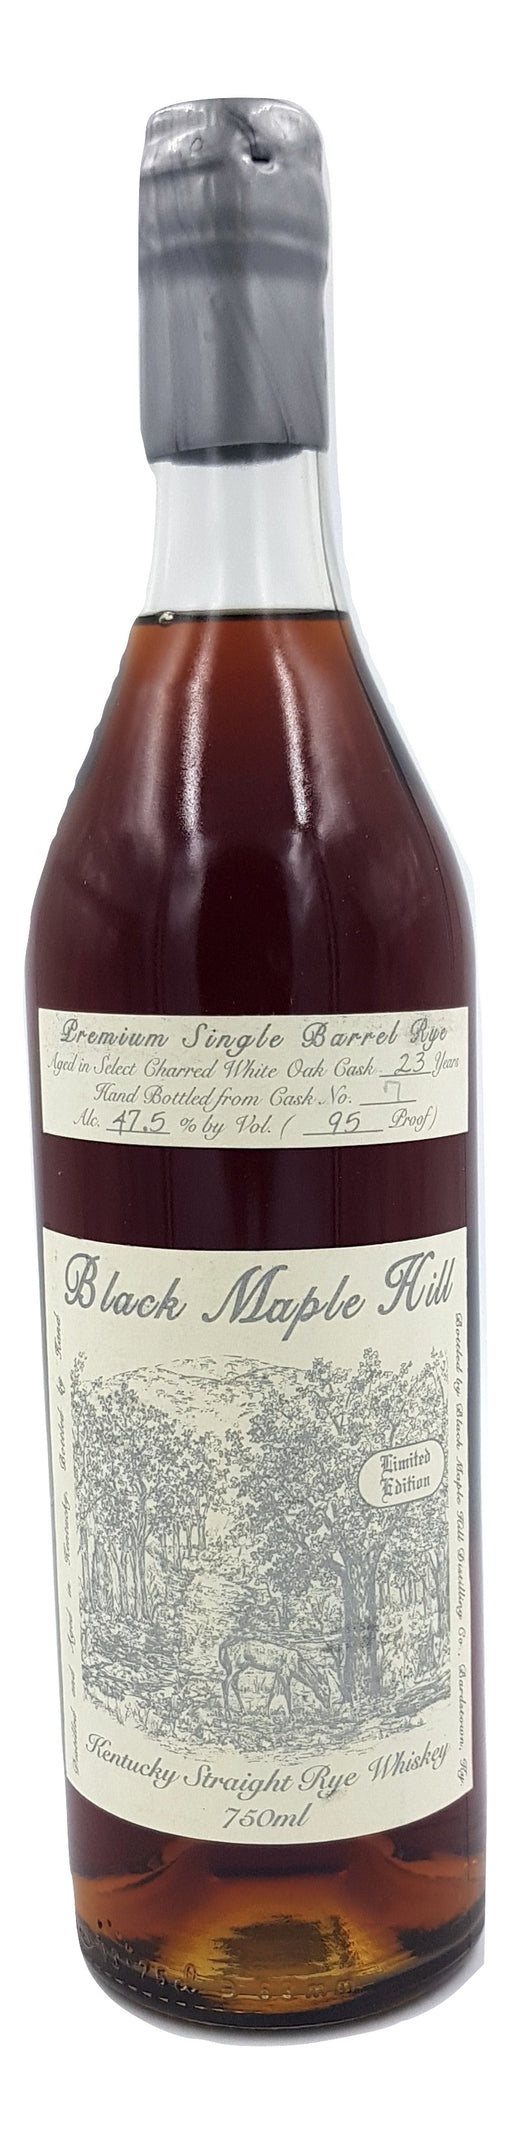 Black Maple Hill 23 Year Old Single Barrel Rye - Cask 1 - NativeSpiritsOnline